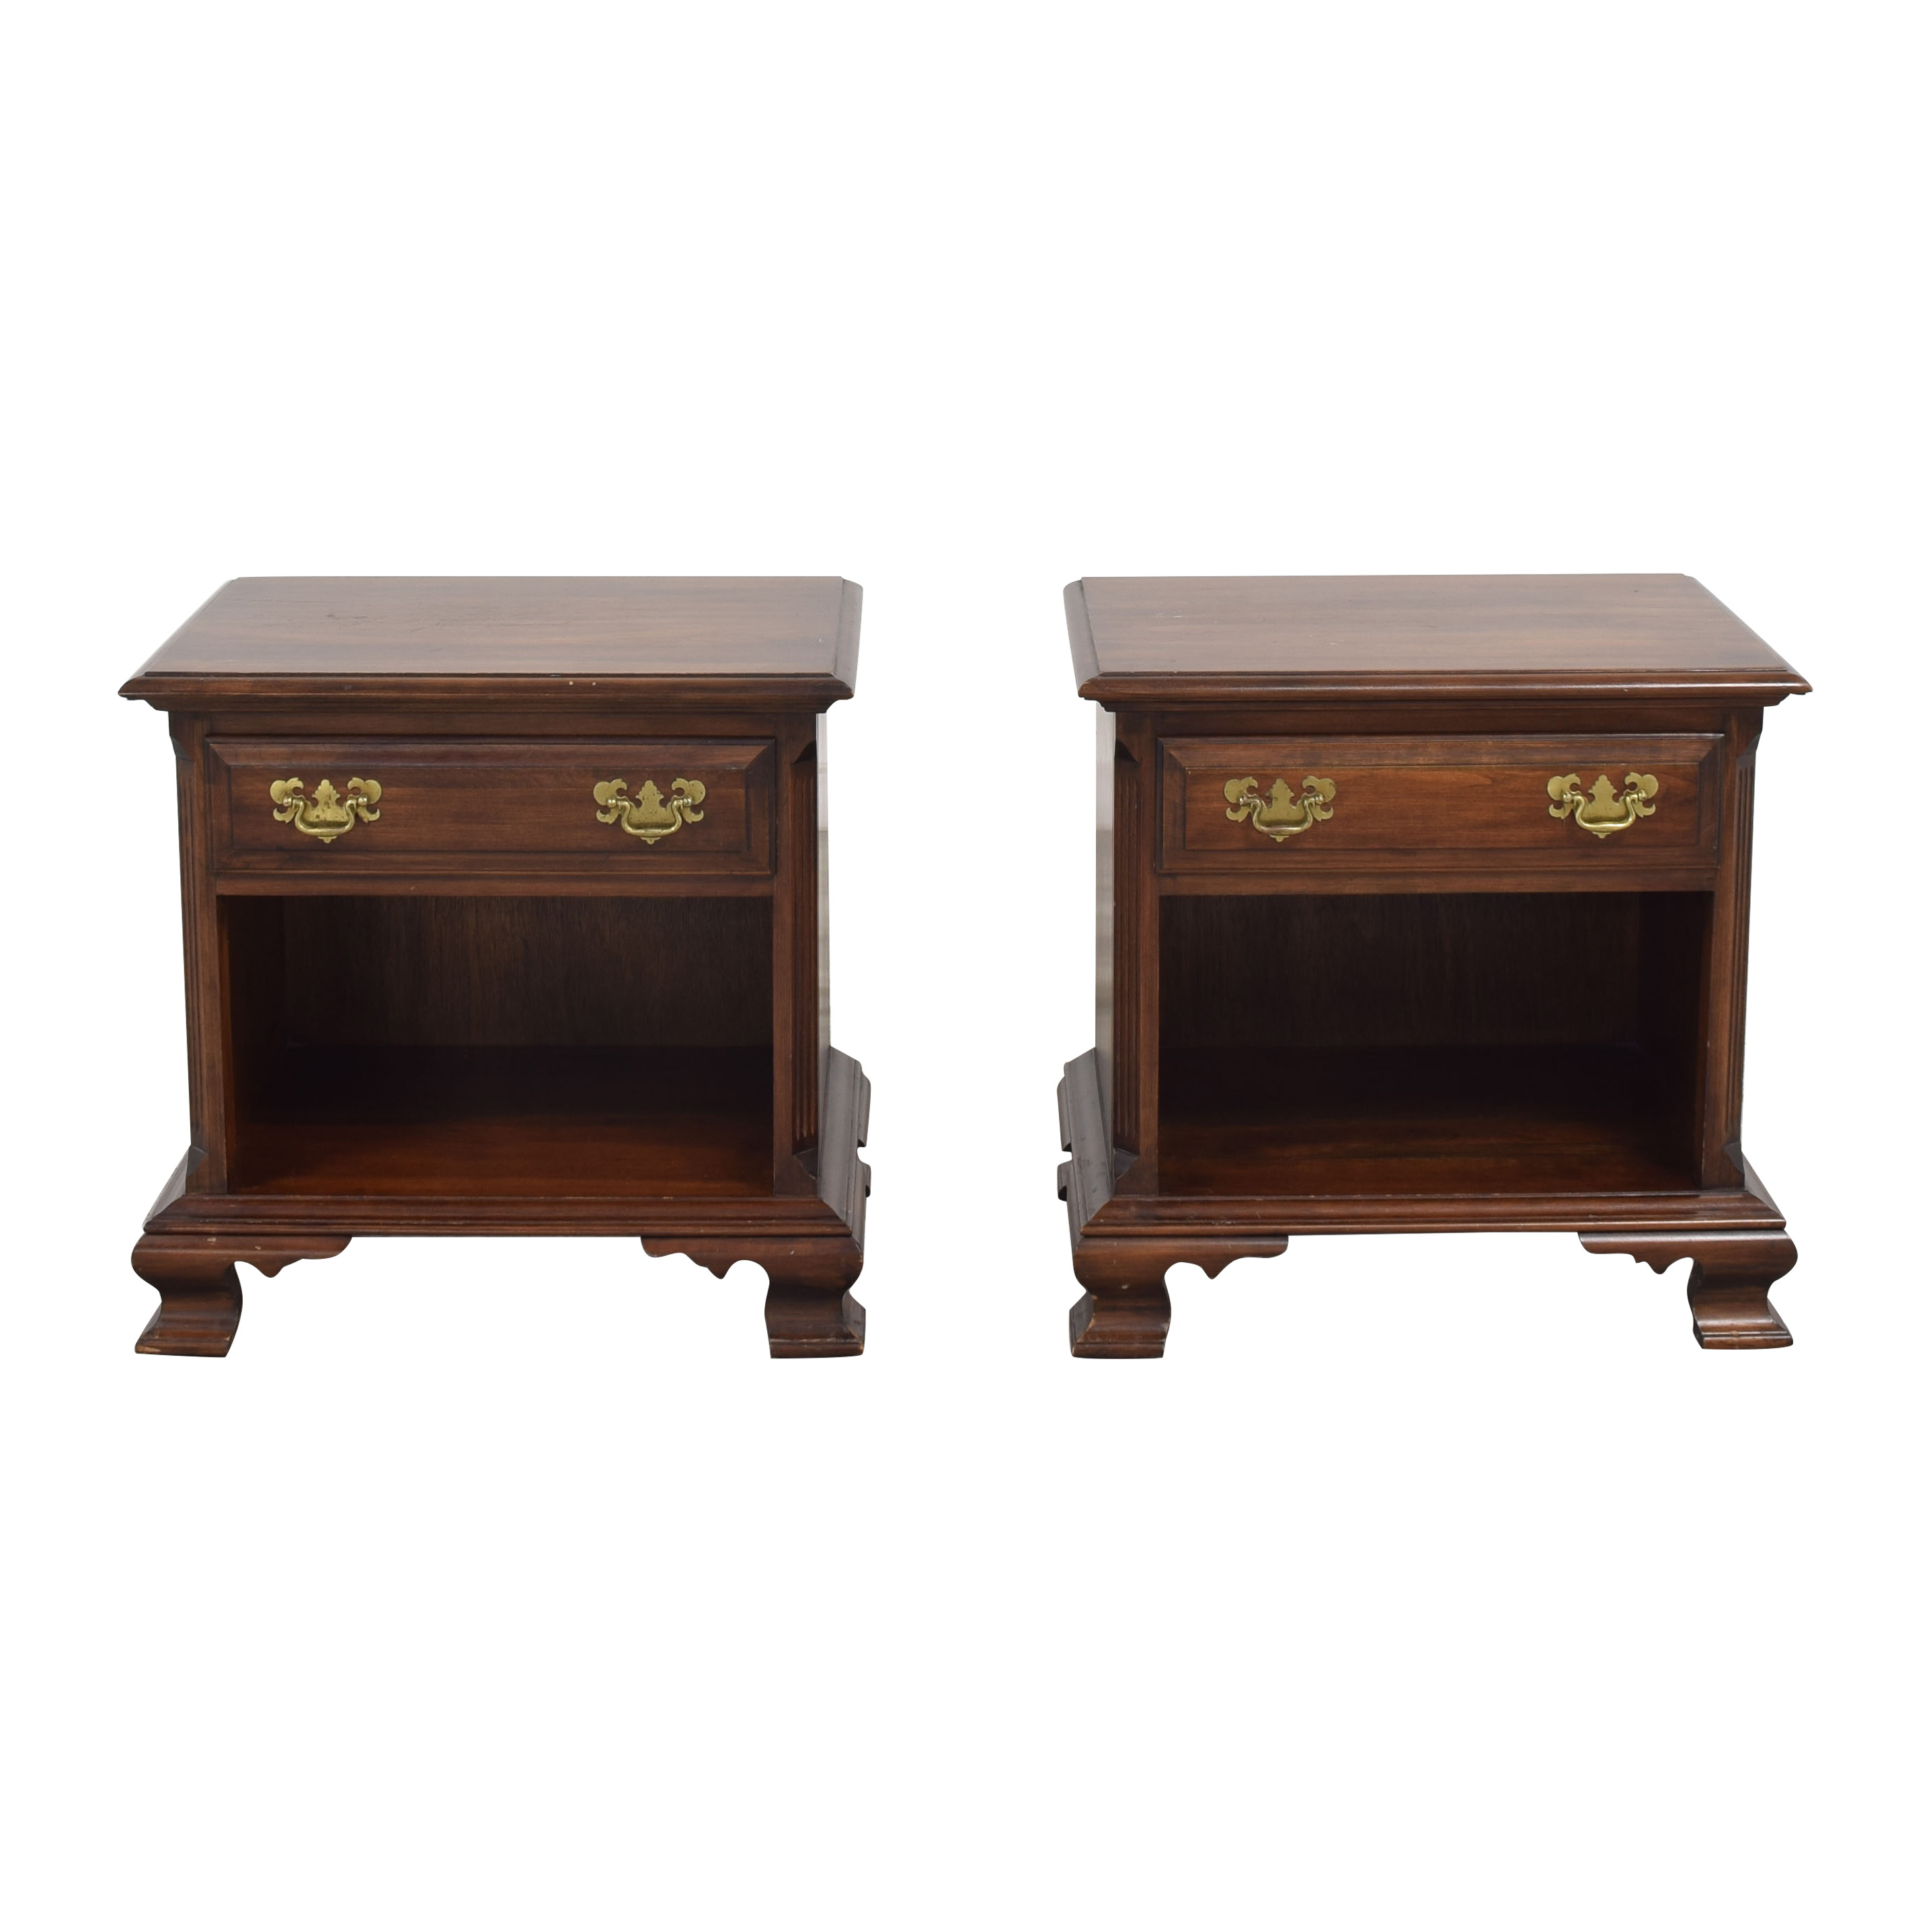 Pennsylvania House Pennsylvania House Federal Style Nightstands on sale